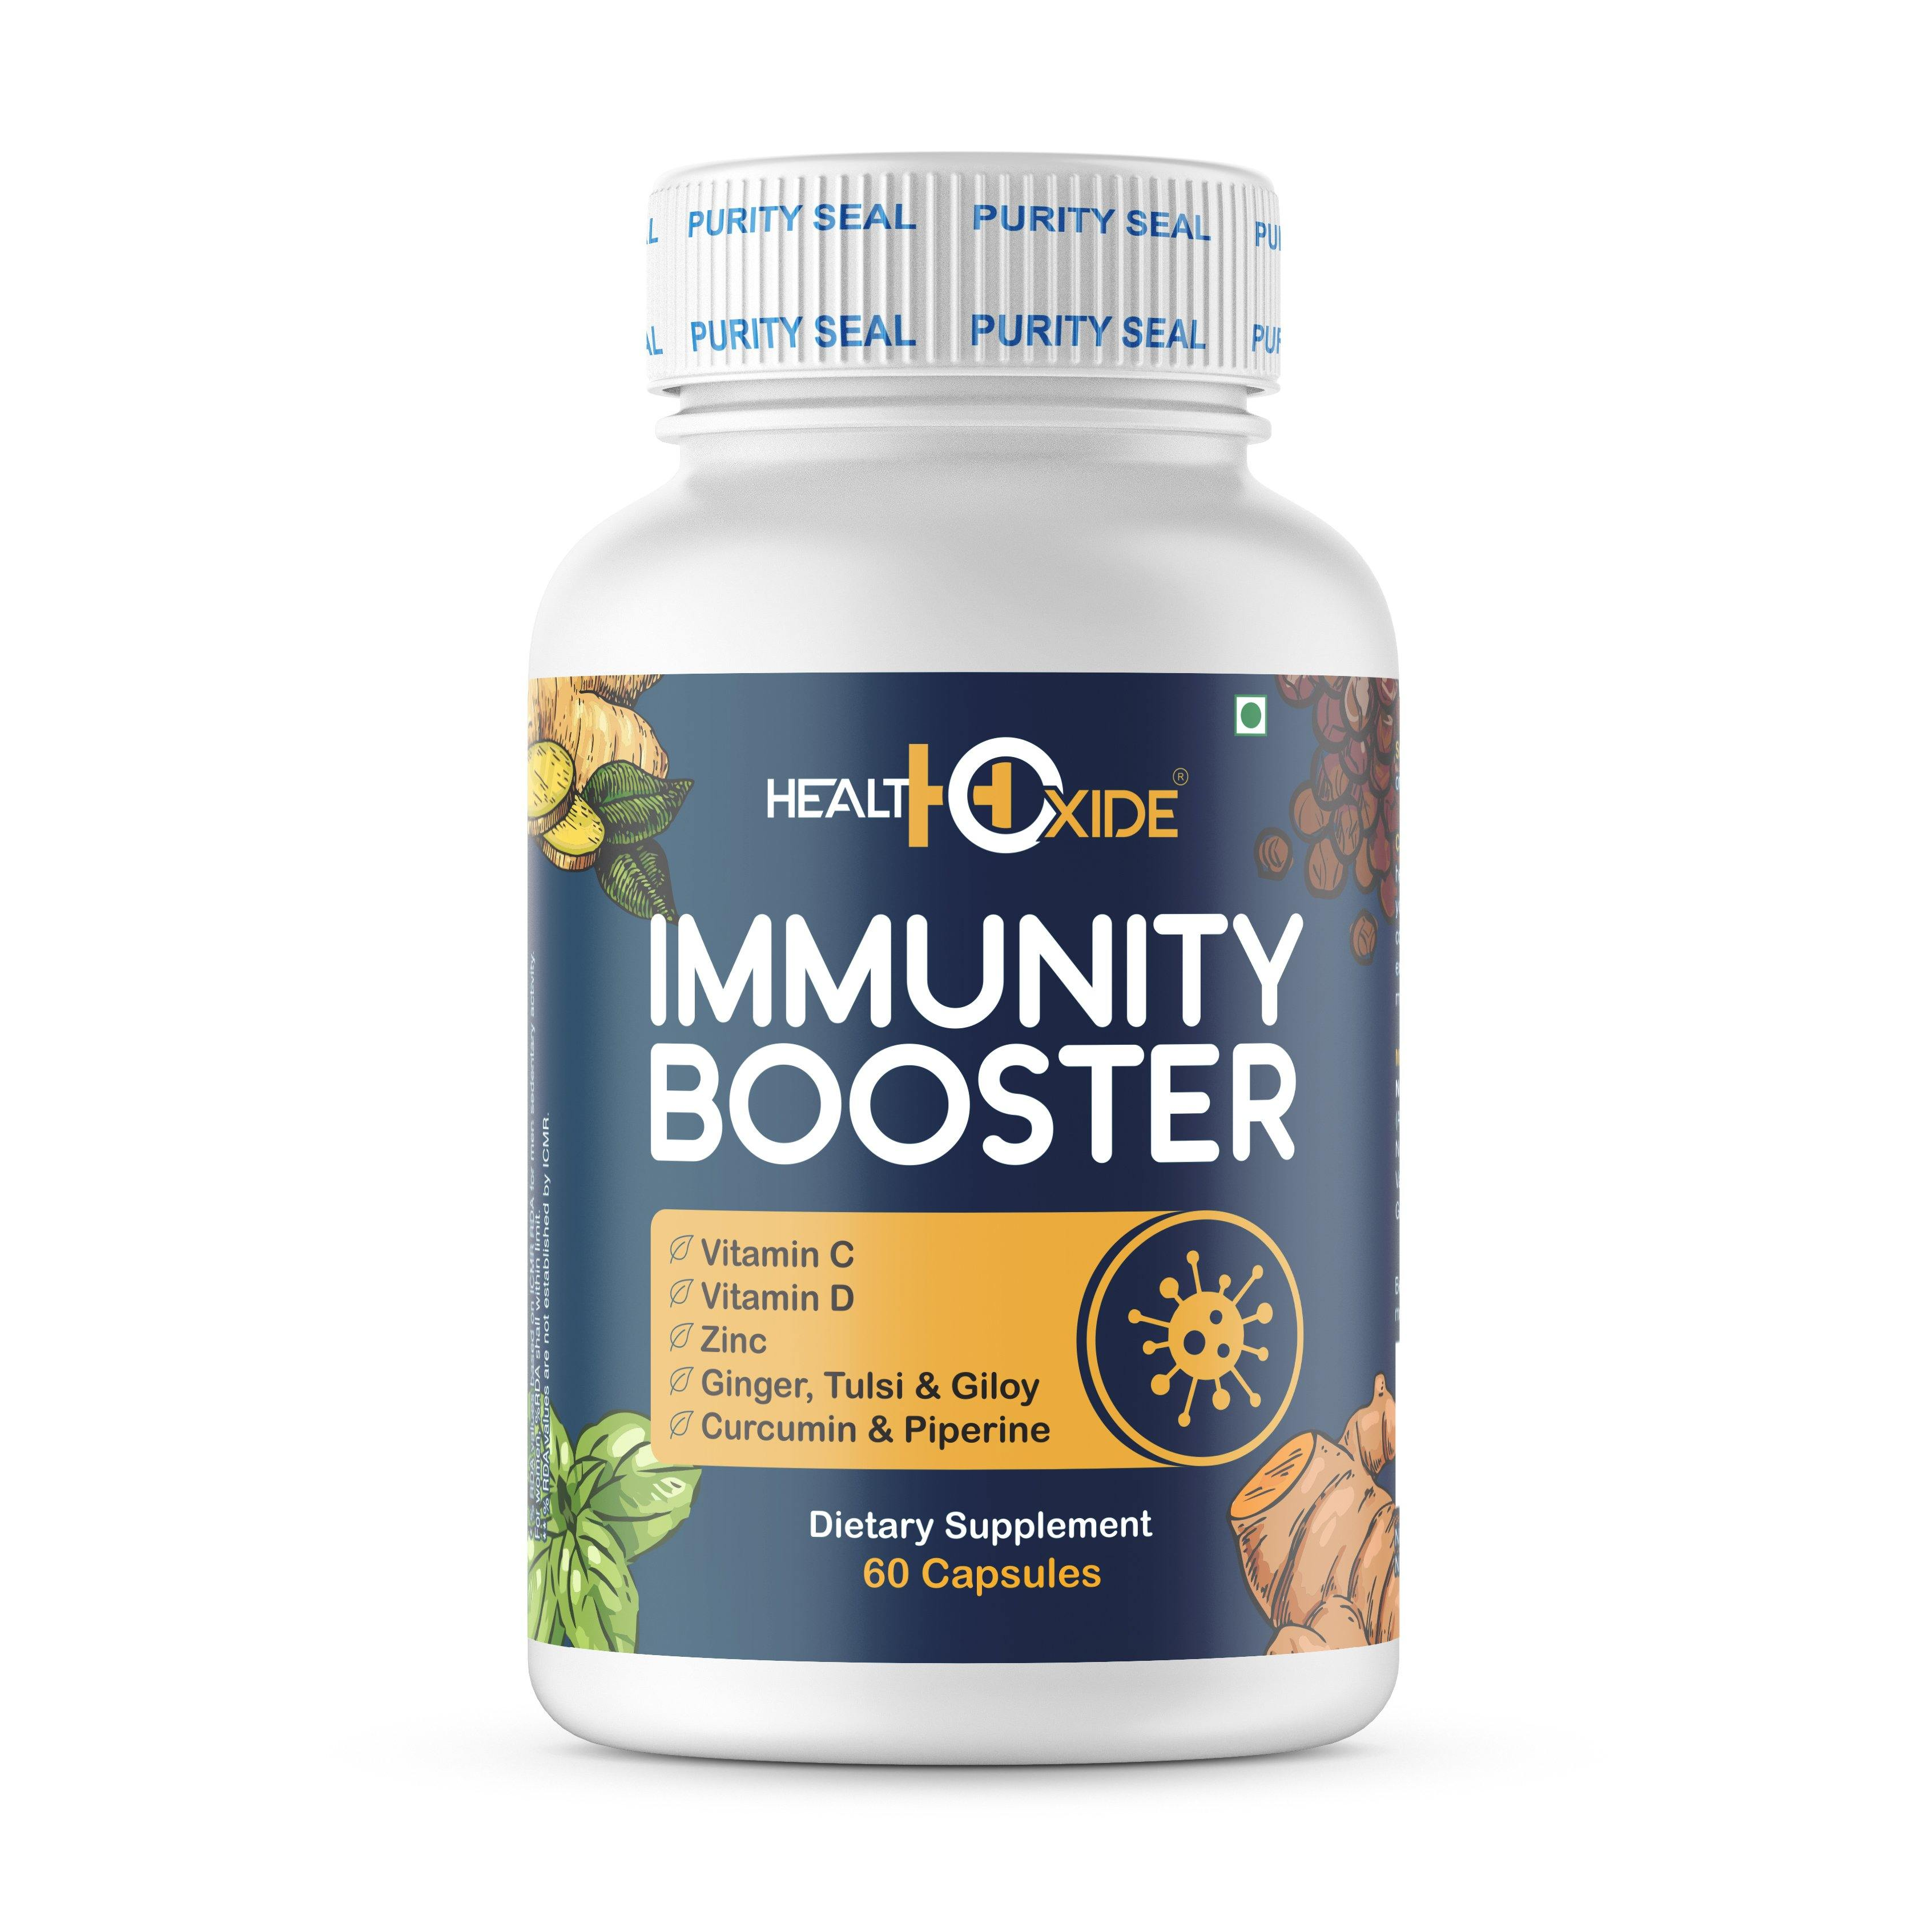 HealthOxide Immunity Booster with Vitamin C, D, B Complex, Zinc, Amla, Giloy, Tulsi, Ginger, Turmeric (60 Veg. Capsules) - HealthOxide